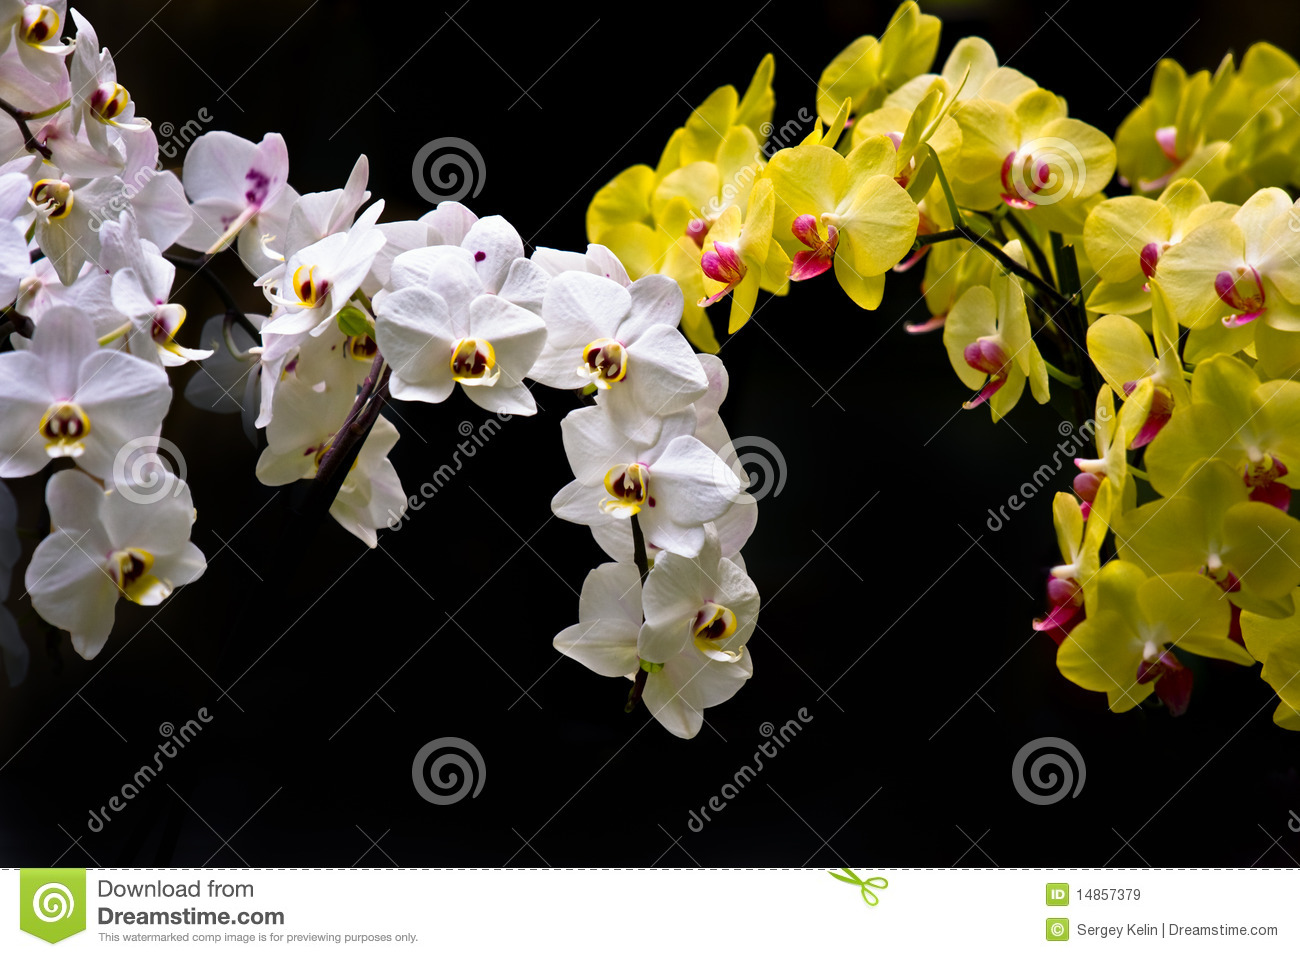 Colorful white and yellow orchids